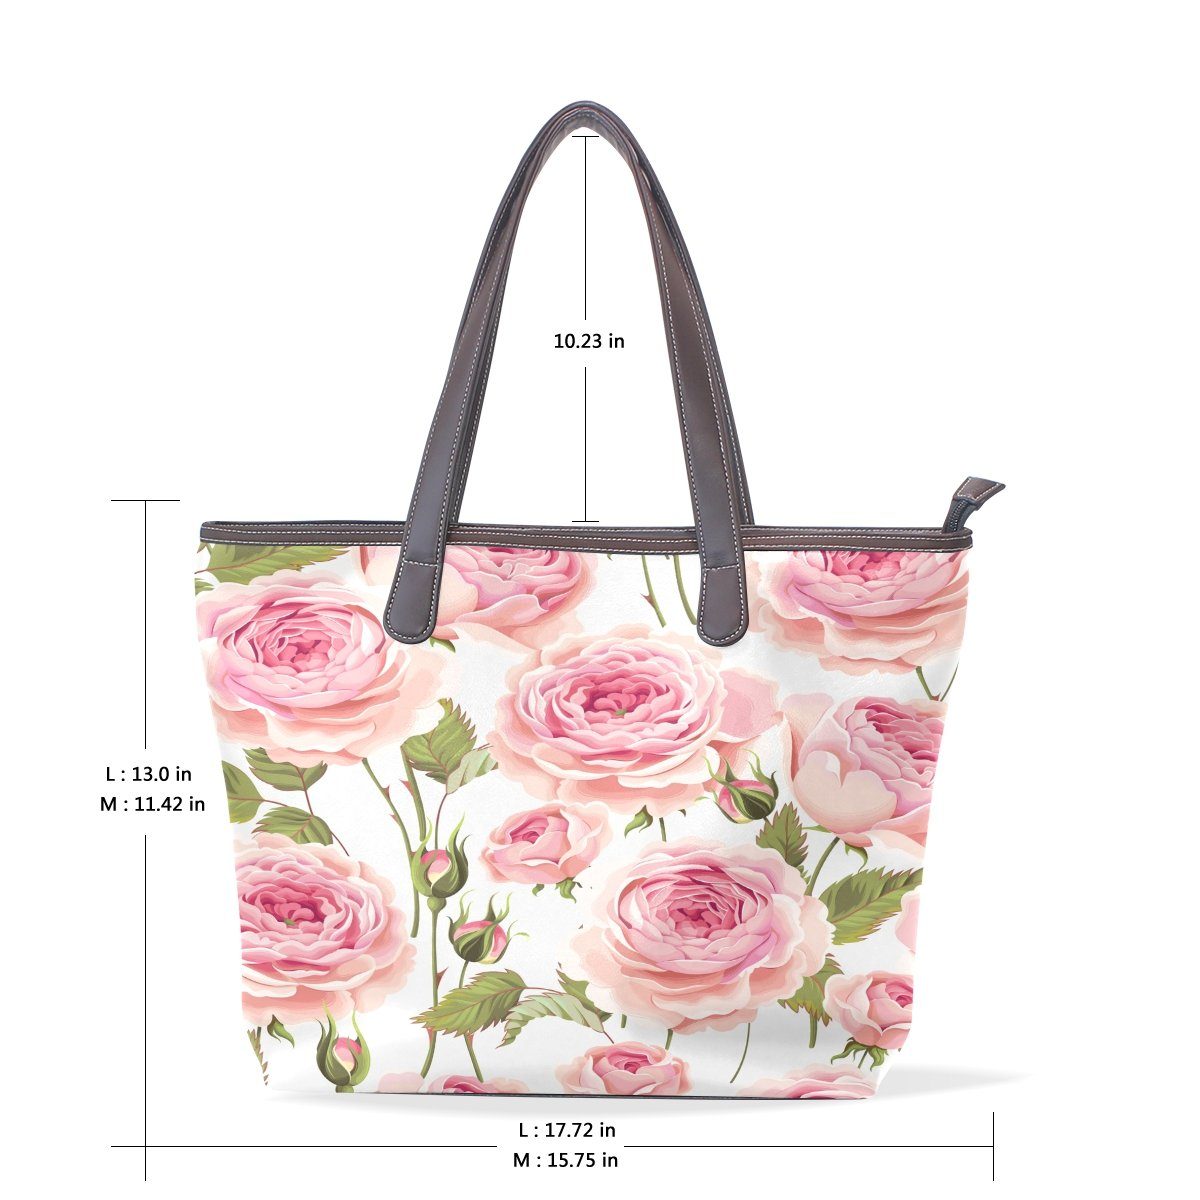 Ye Store Big Pink Rose Lady PU Leather Handbag Tote Bag Shoulder Bag Shopping Bag